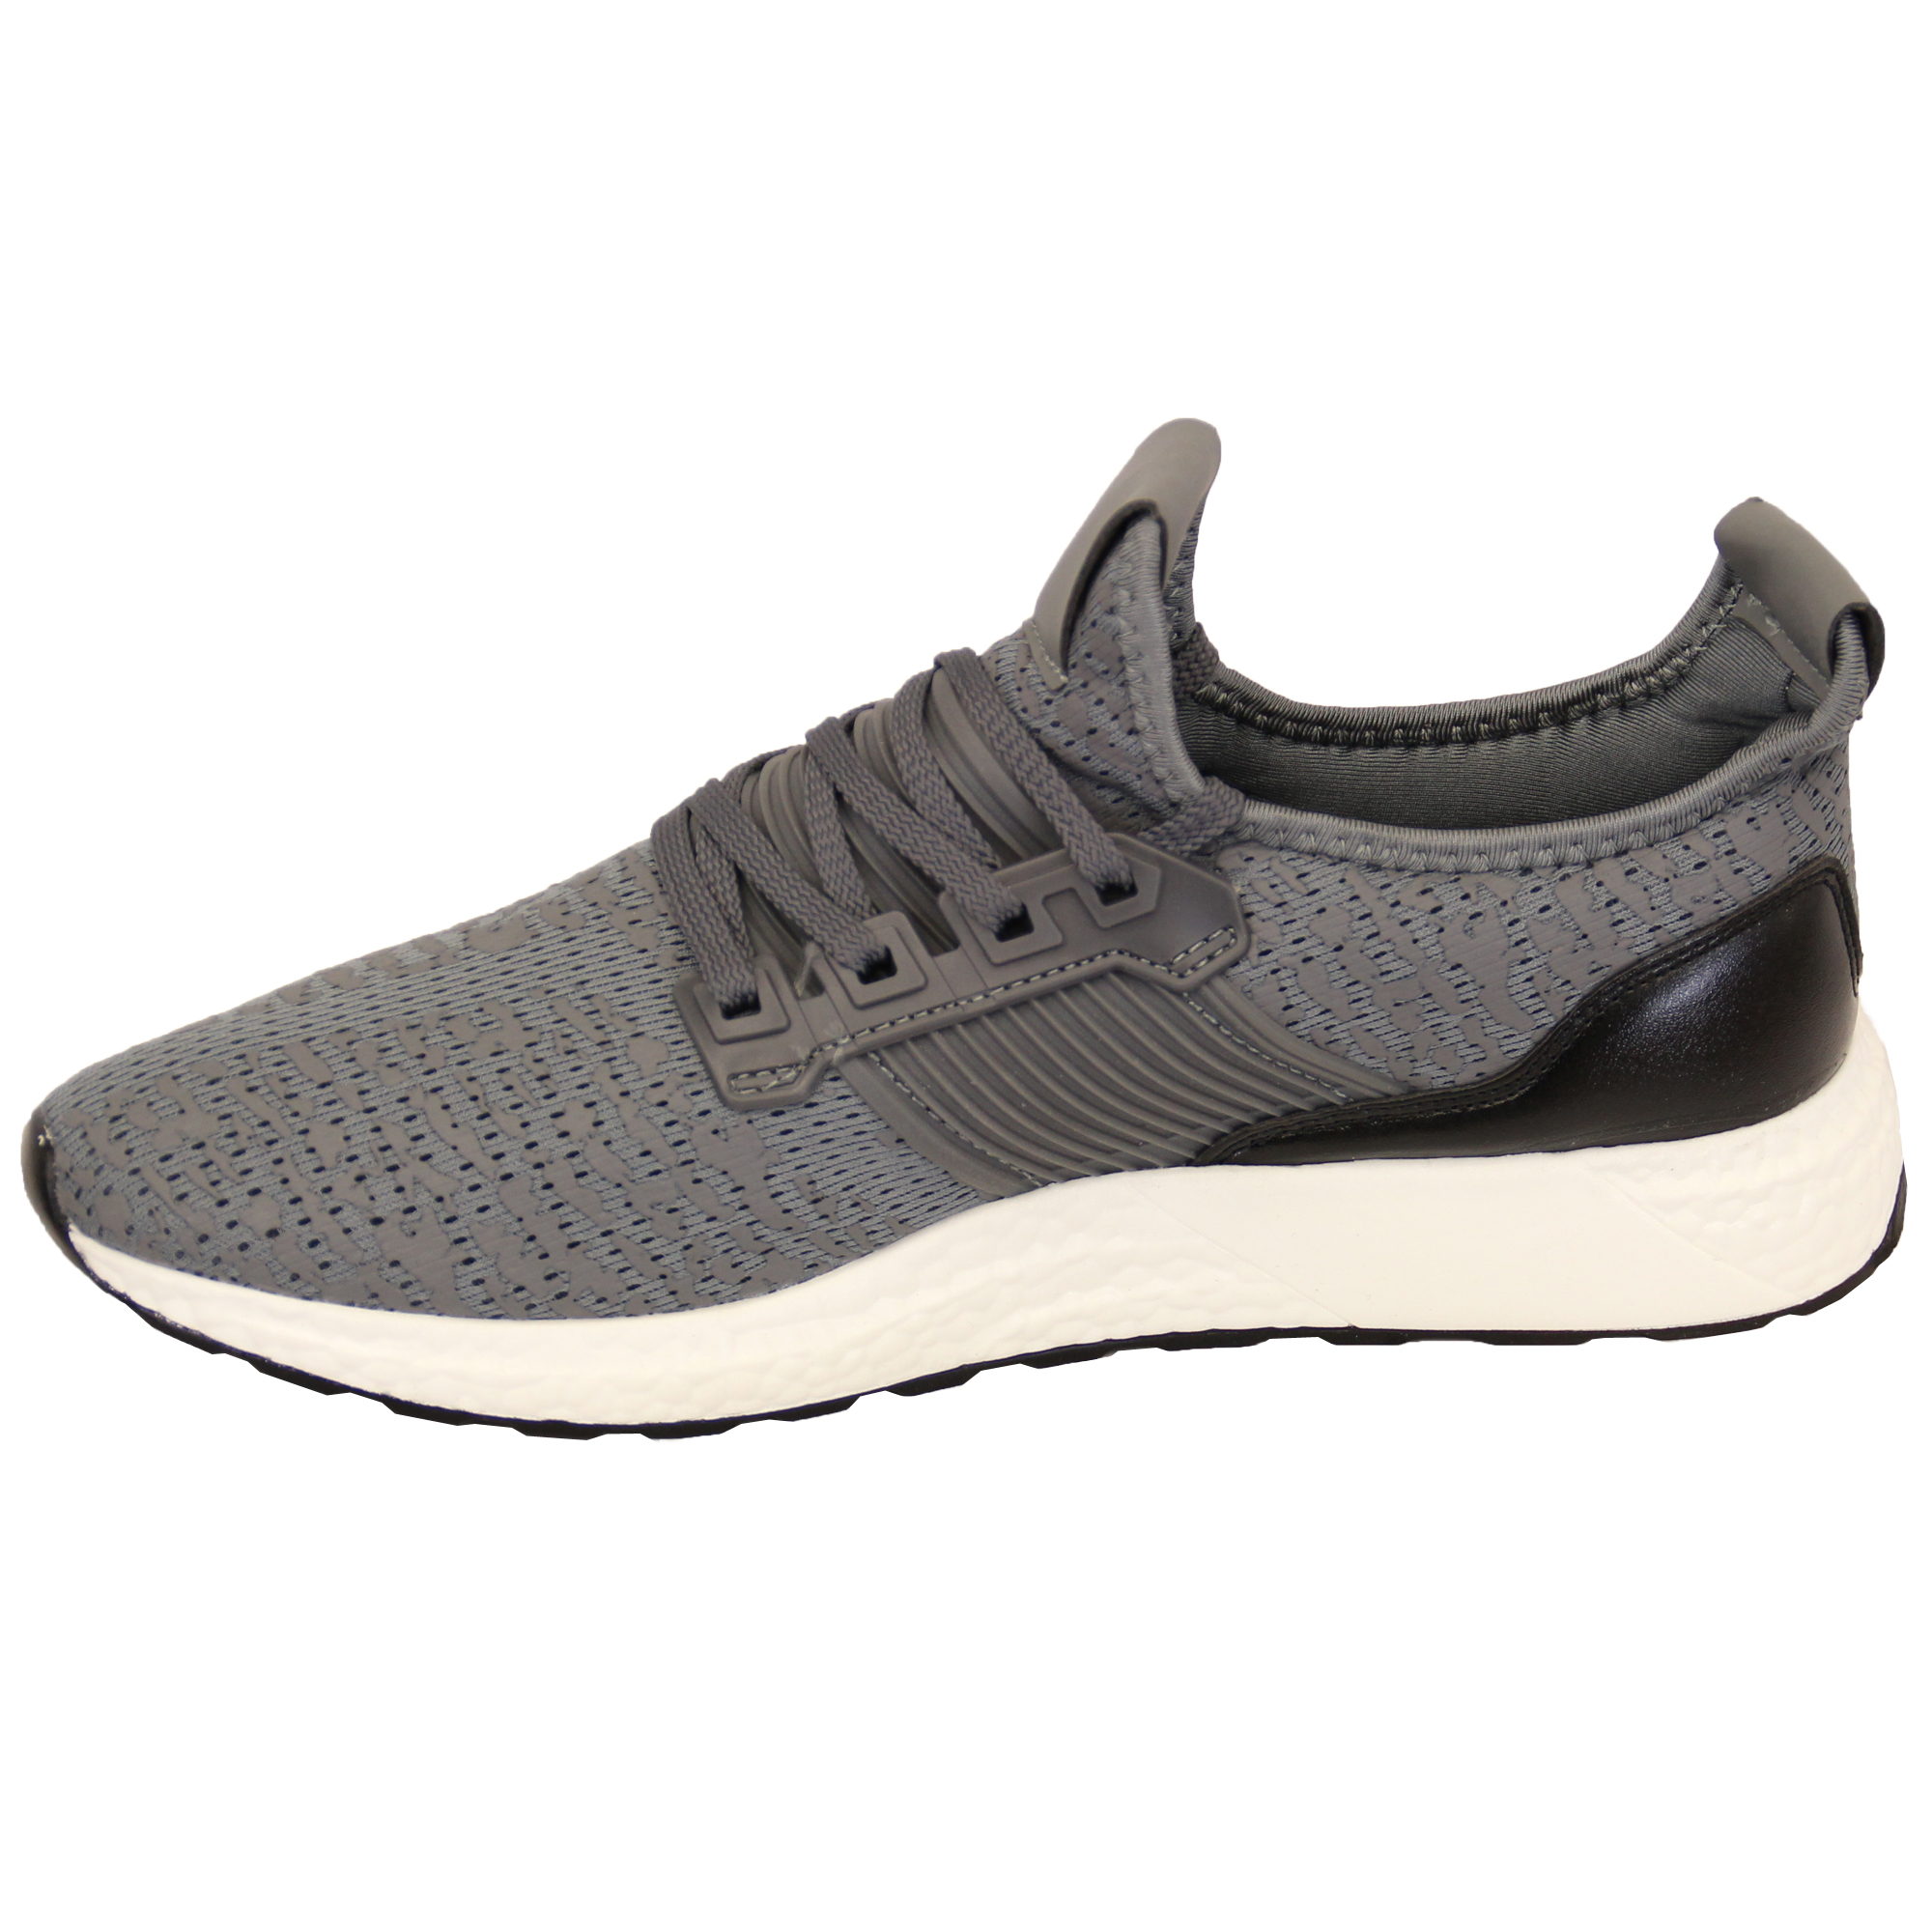 Mens-Trainers-Shoes-Lace-Up-Running-Gym-Sports-Mesh-Casual-Summer-Fashion-New thumbnail 3